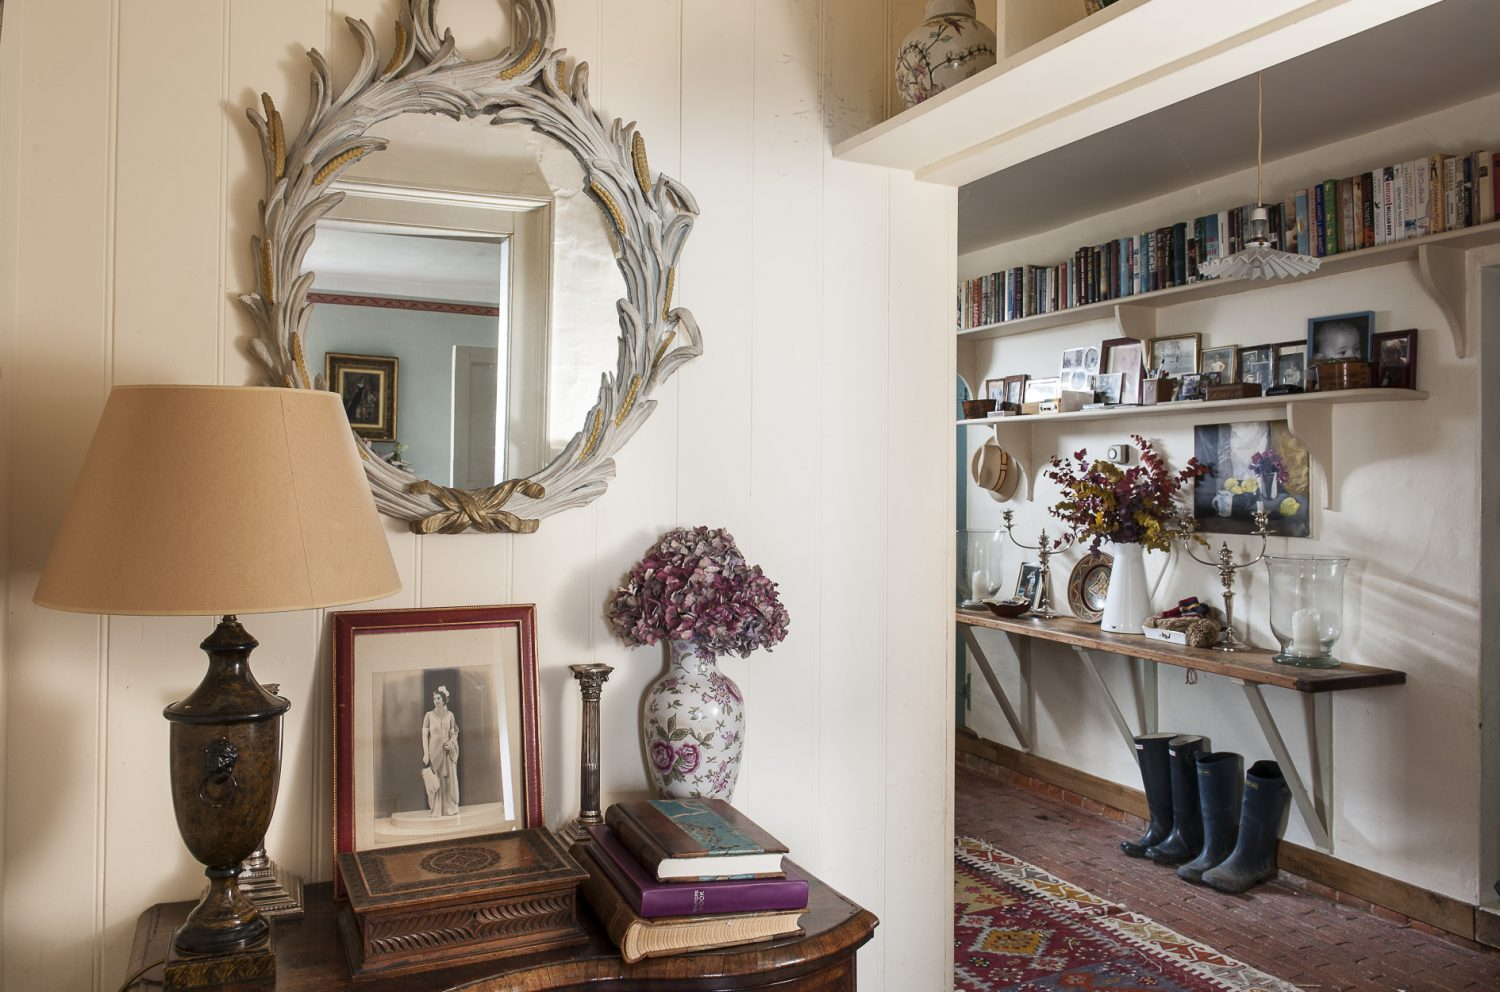 The delightful entrance hall